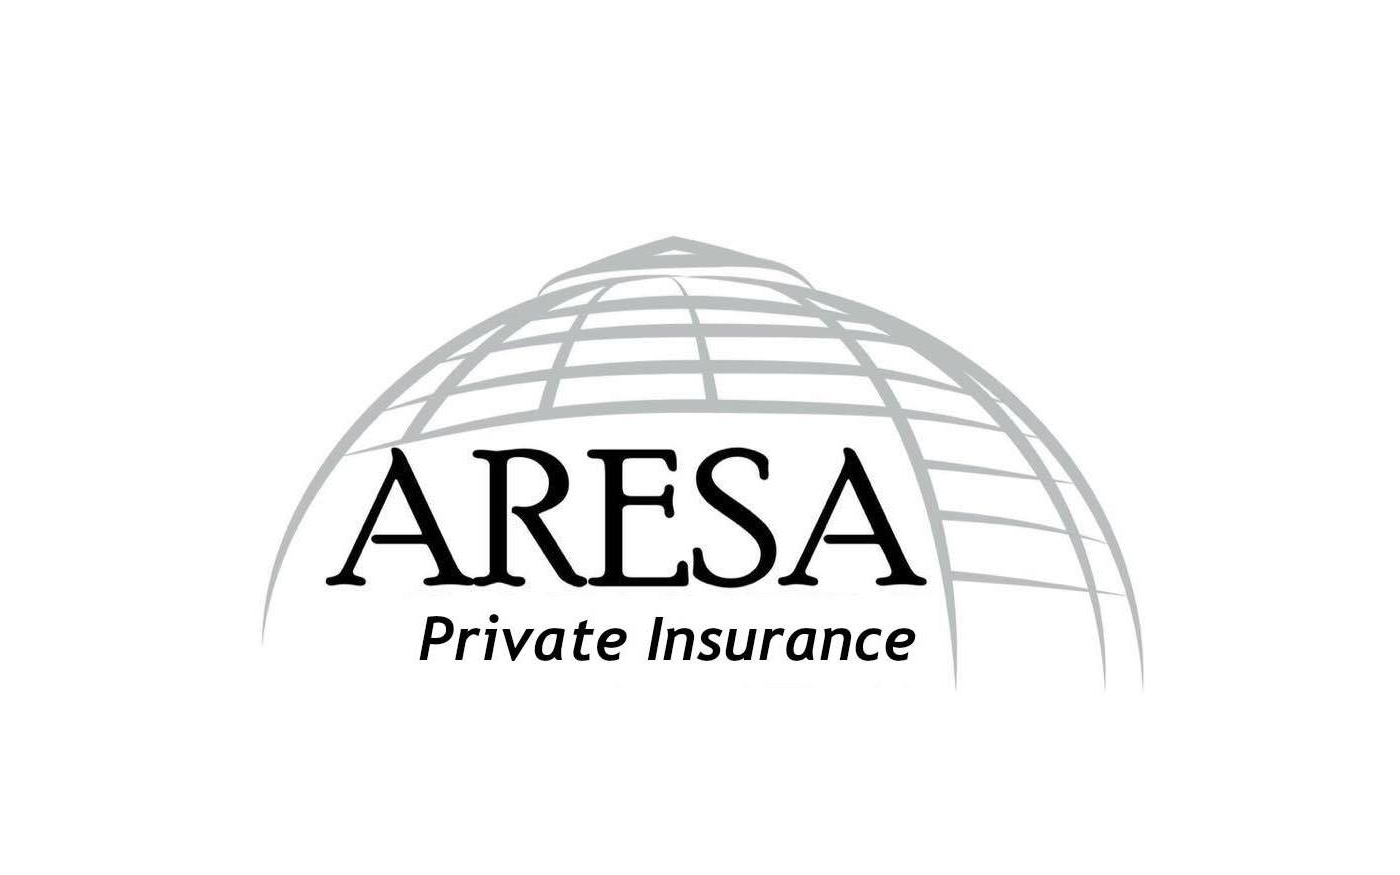 Aresa Private Insurance